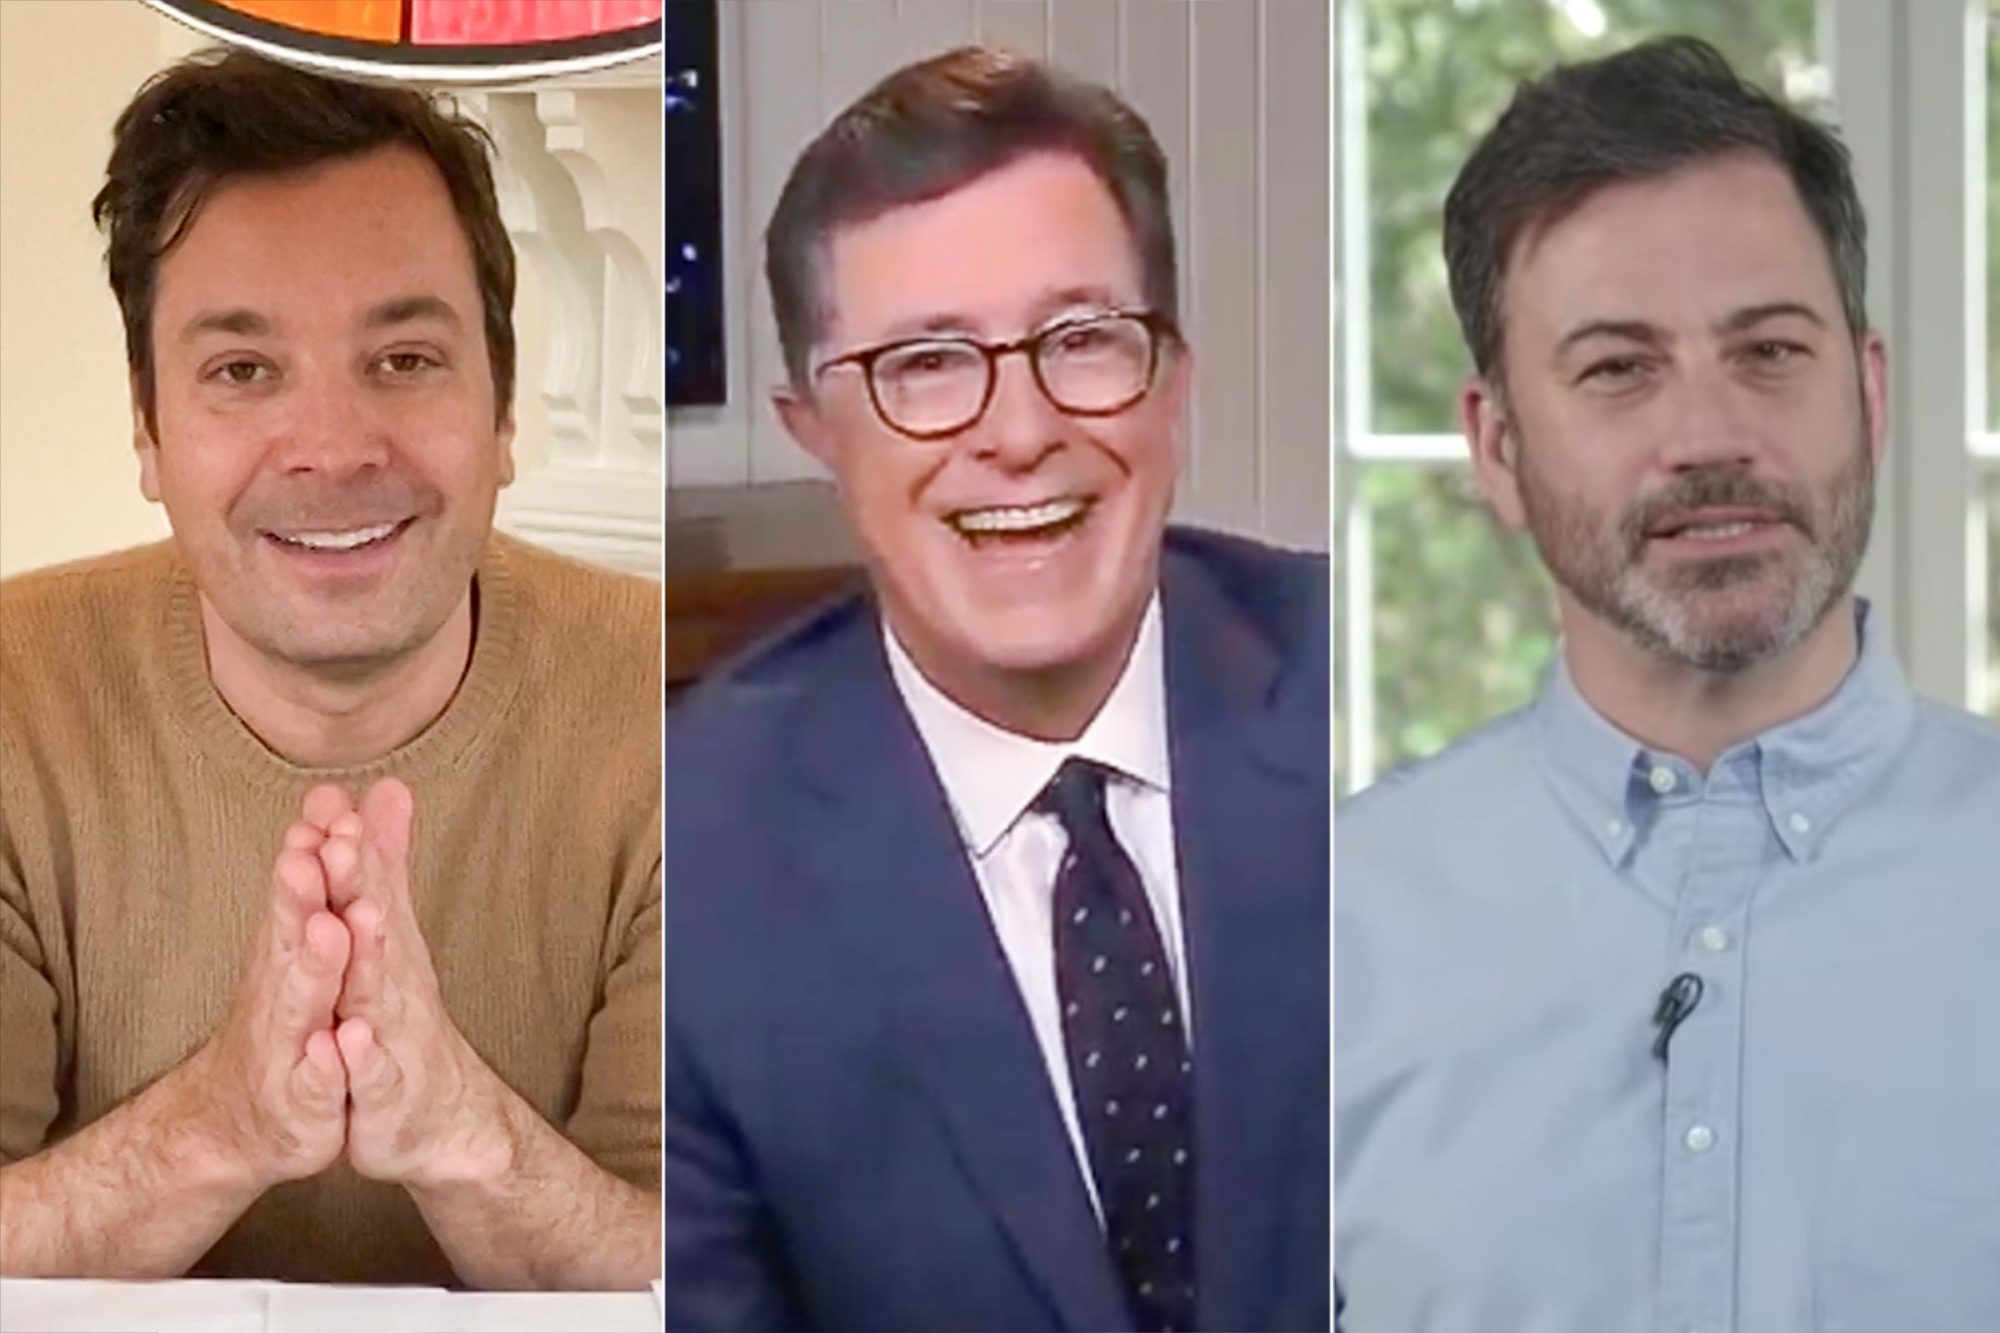 Jimmy Fallon, Stephen Colbert, and Jimmy Kimmel